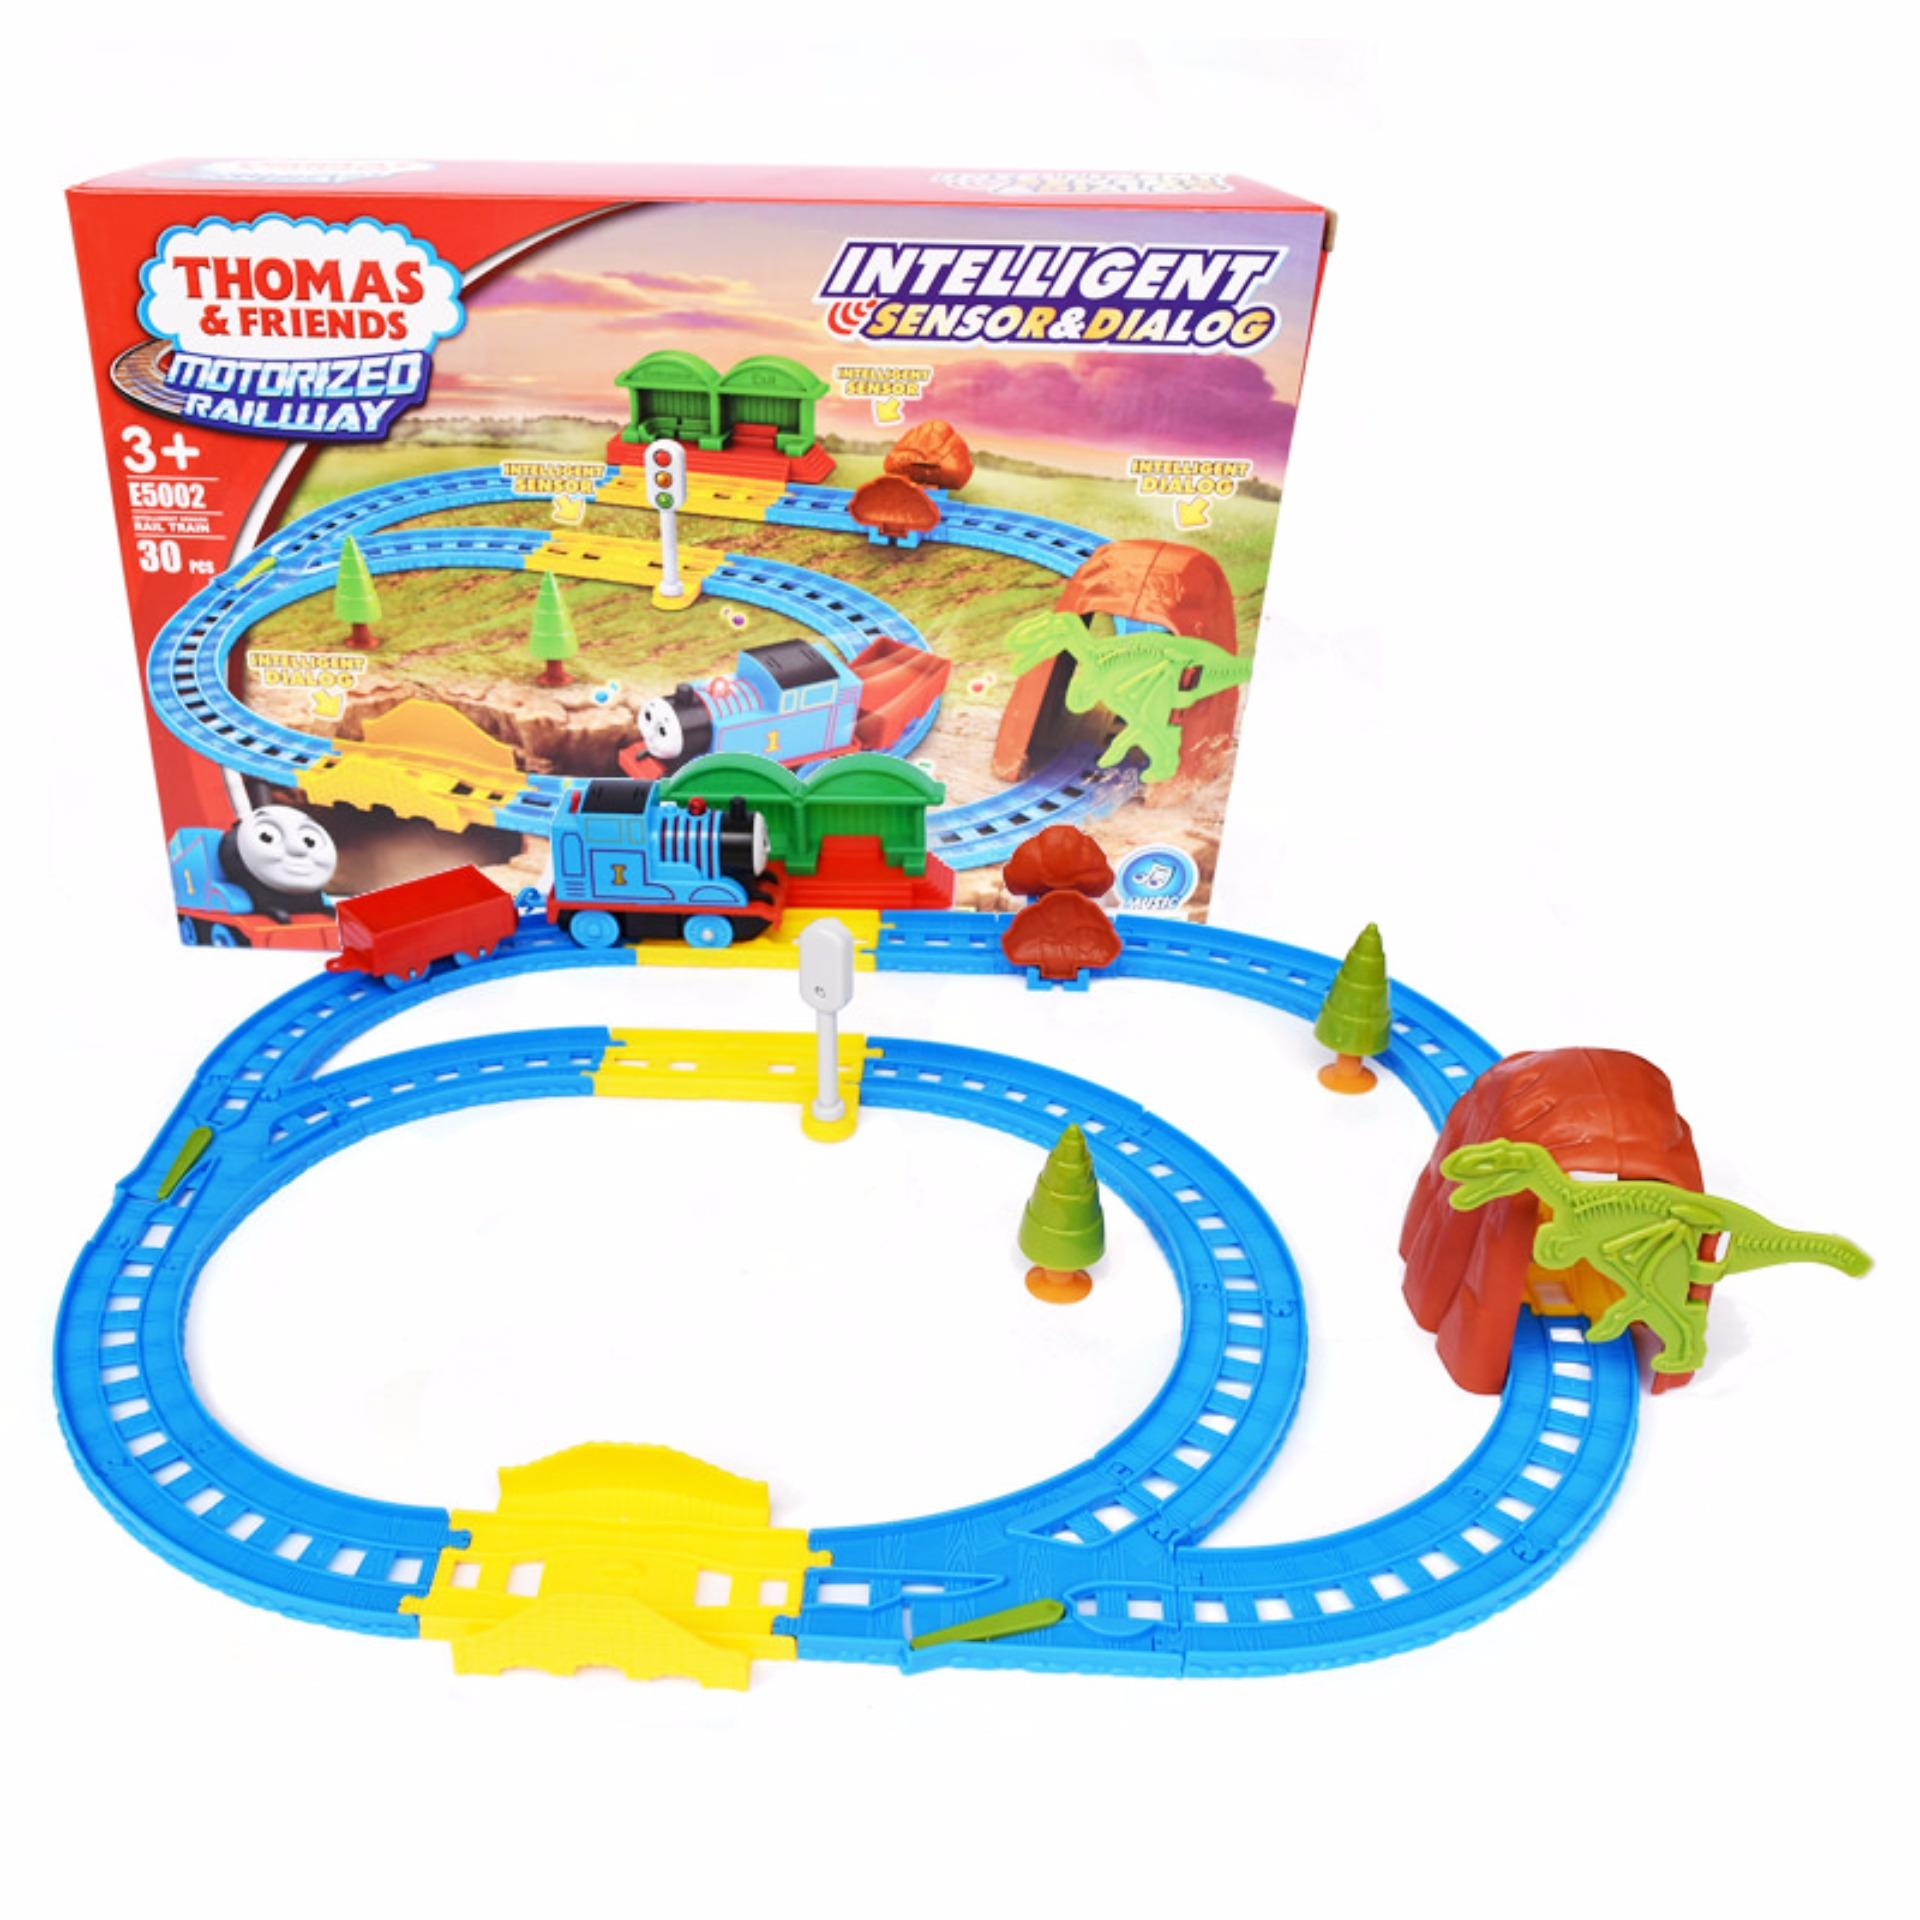 Thomas And Friends Motorized Railway With Intelligent Sensor E5002 Dki Jakarta Diskon 50